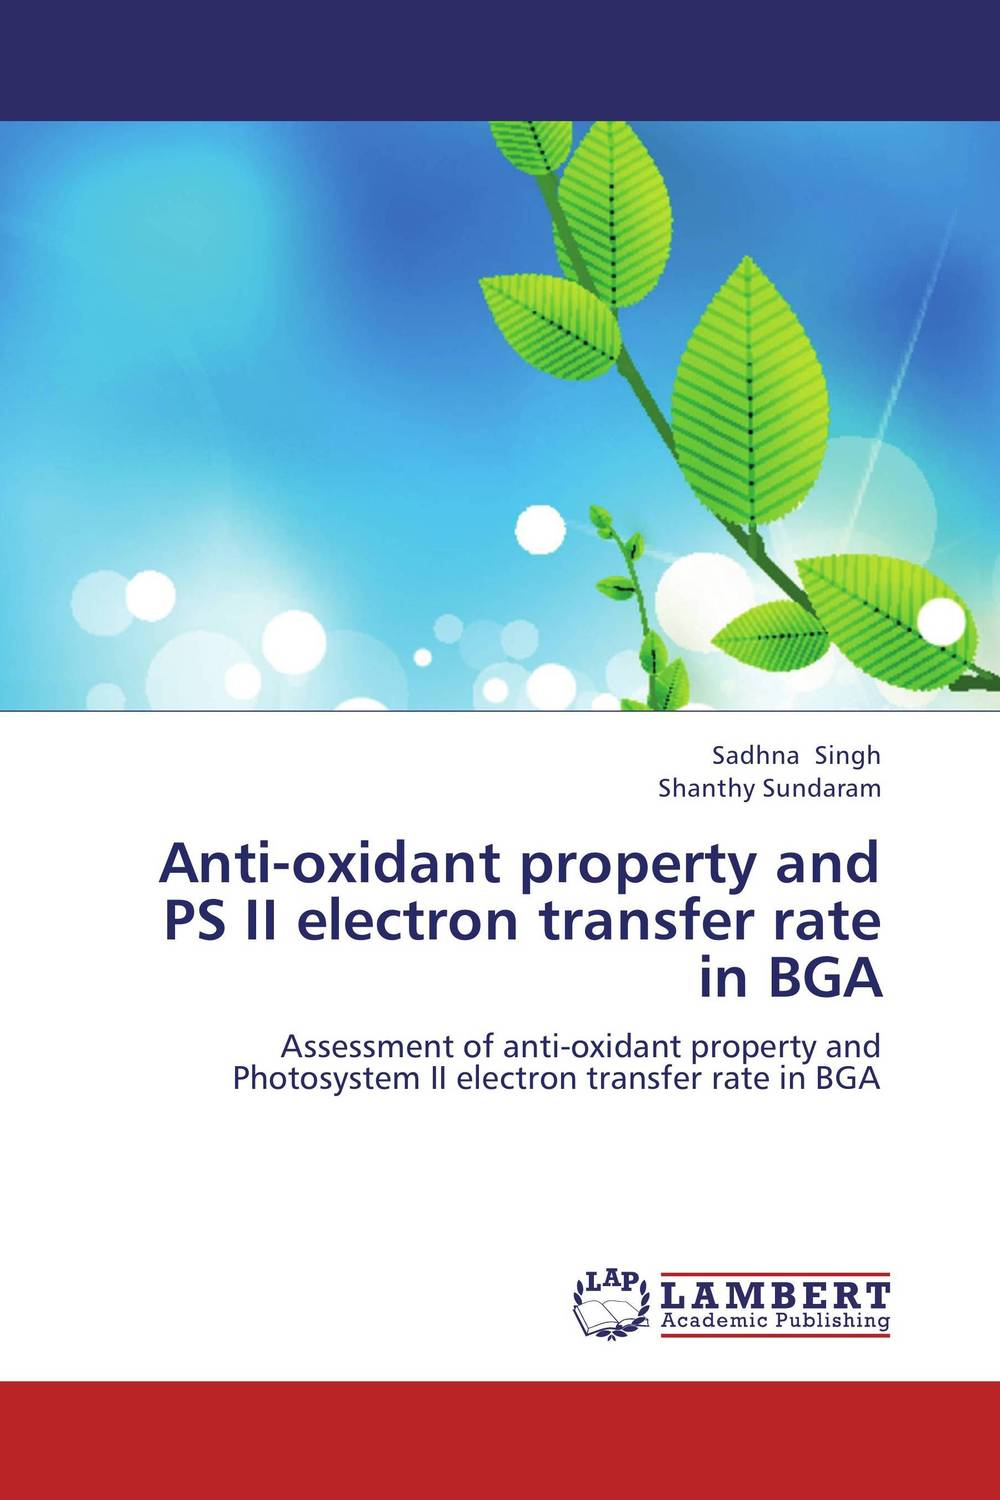 Anti-oxidant property and PS II electron transfer rate in BGA p c execs bullish on growth property casualty insurance statistical data included an article from national underwriter property